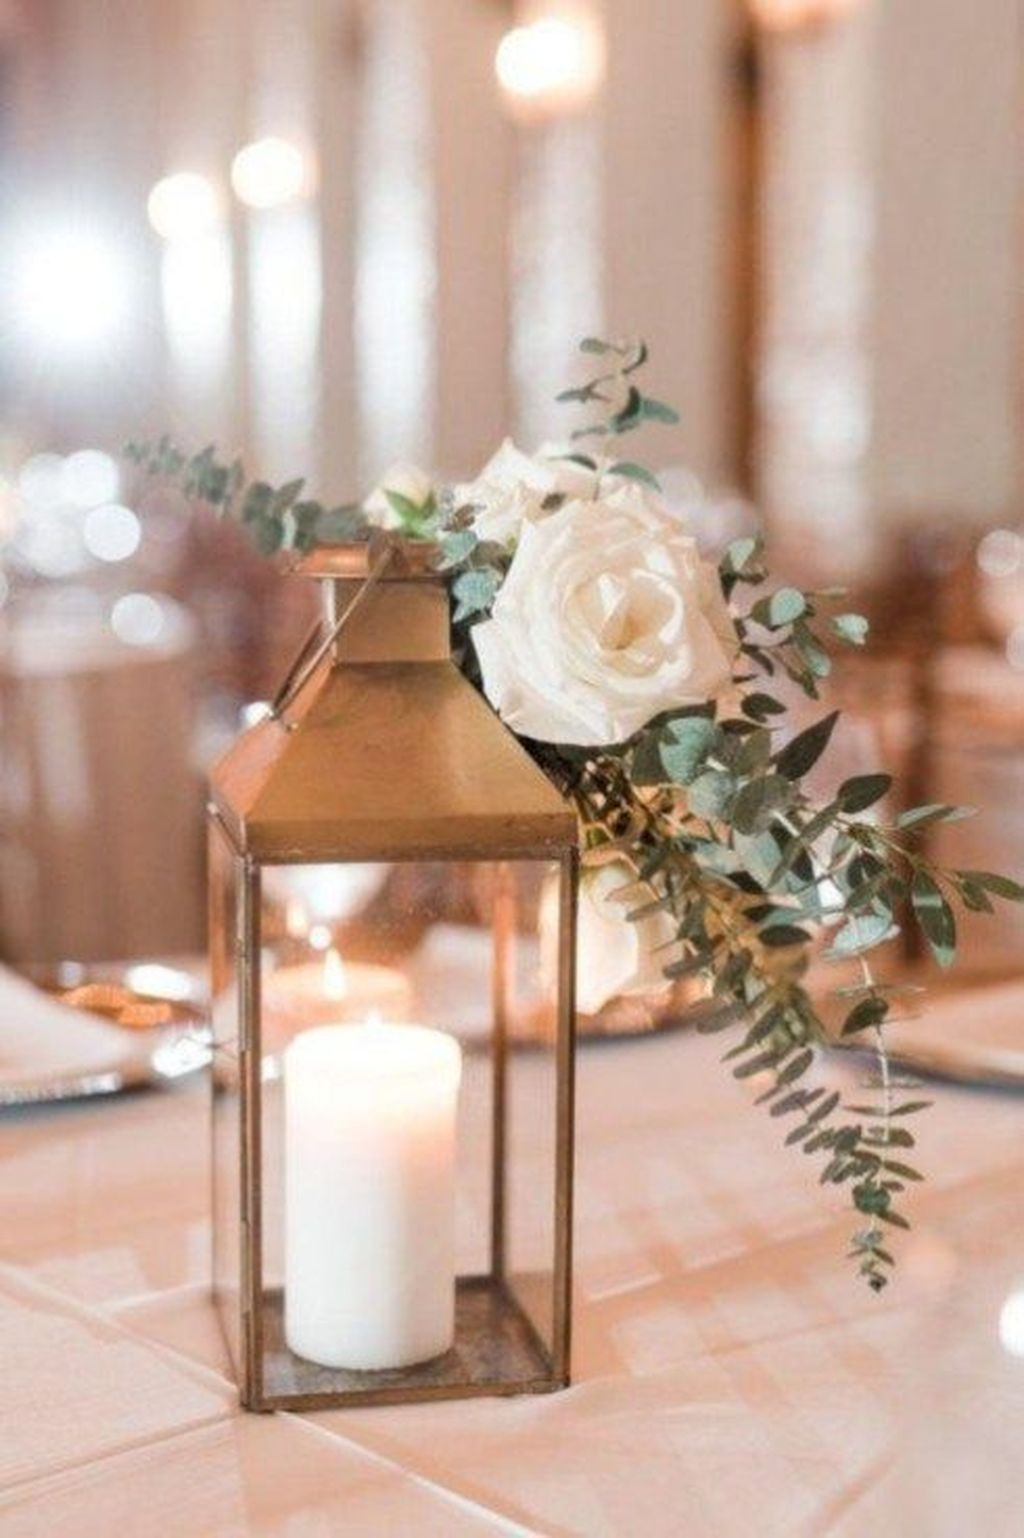 Stunning Winter Lantern Centerpieces For Wedding 20